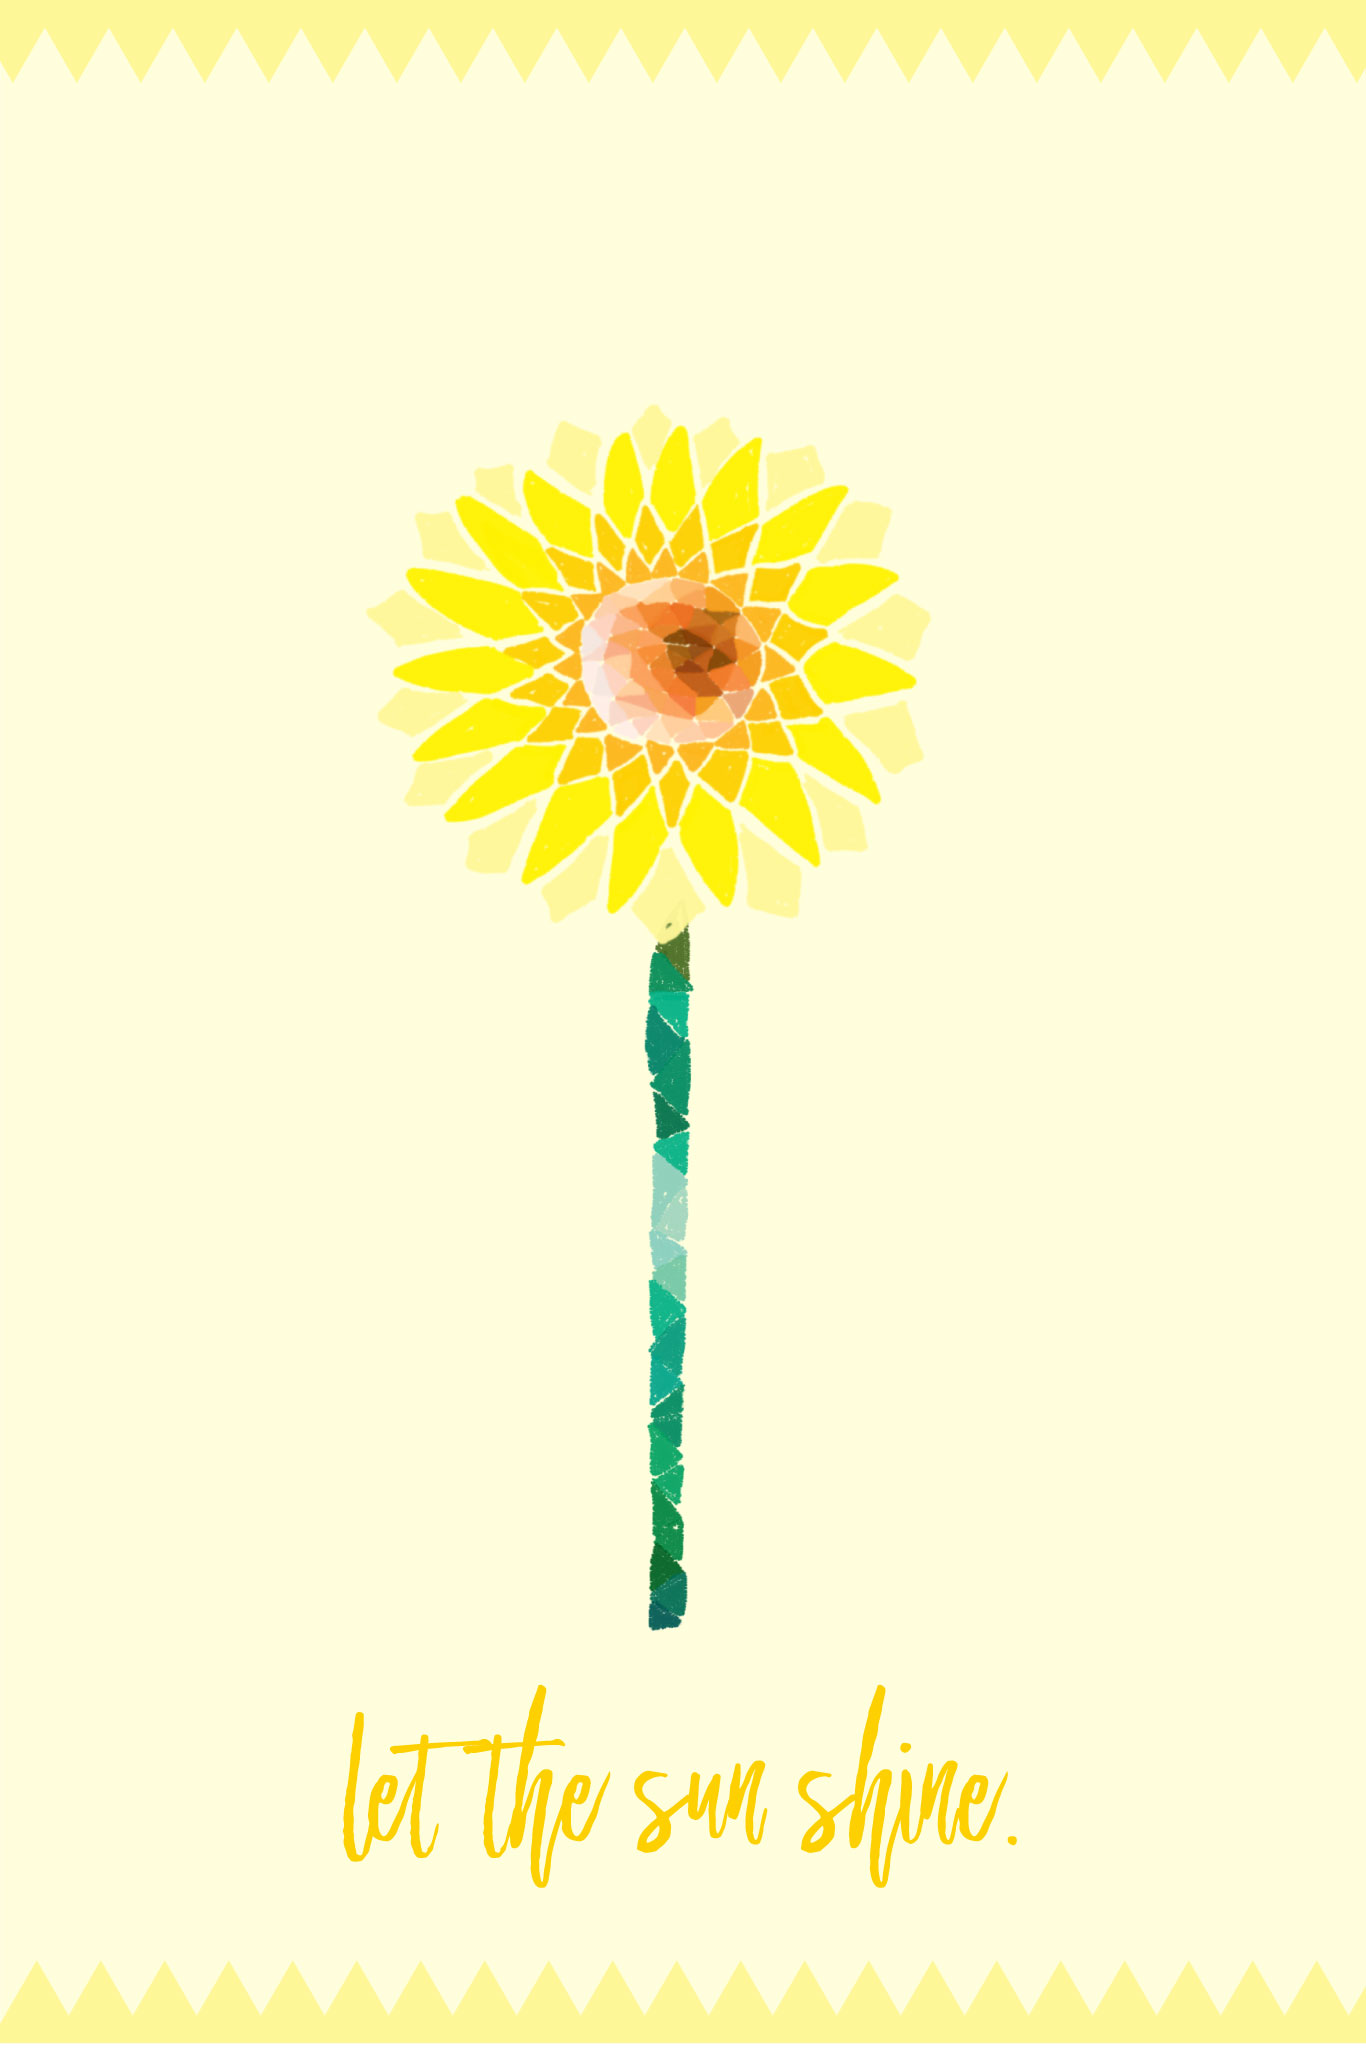 Sunflower HD Wallpaper for Android APK